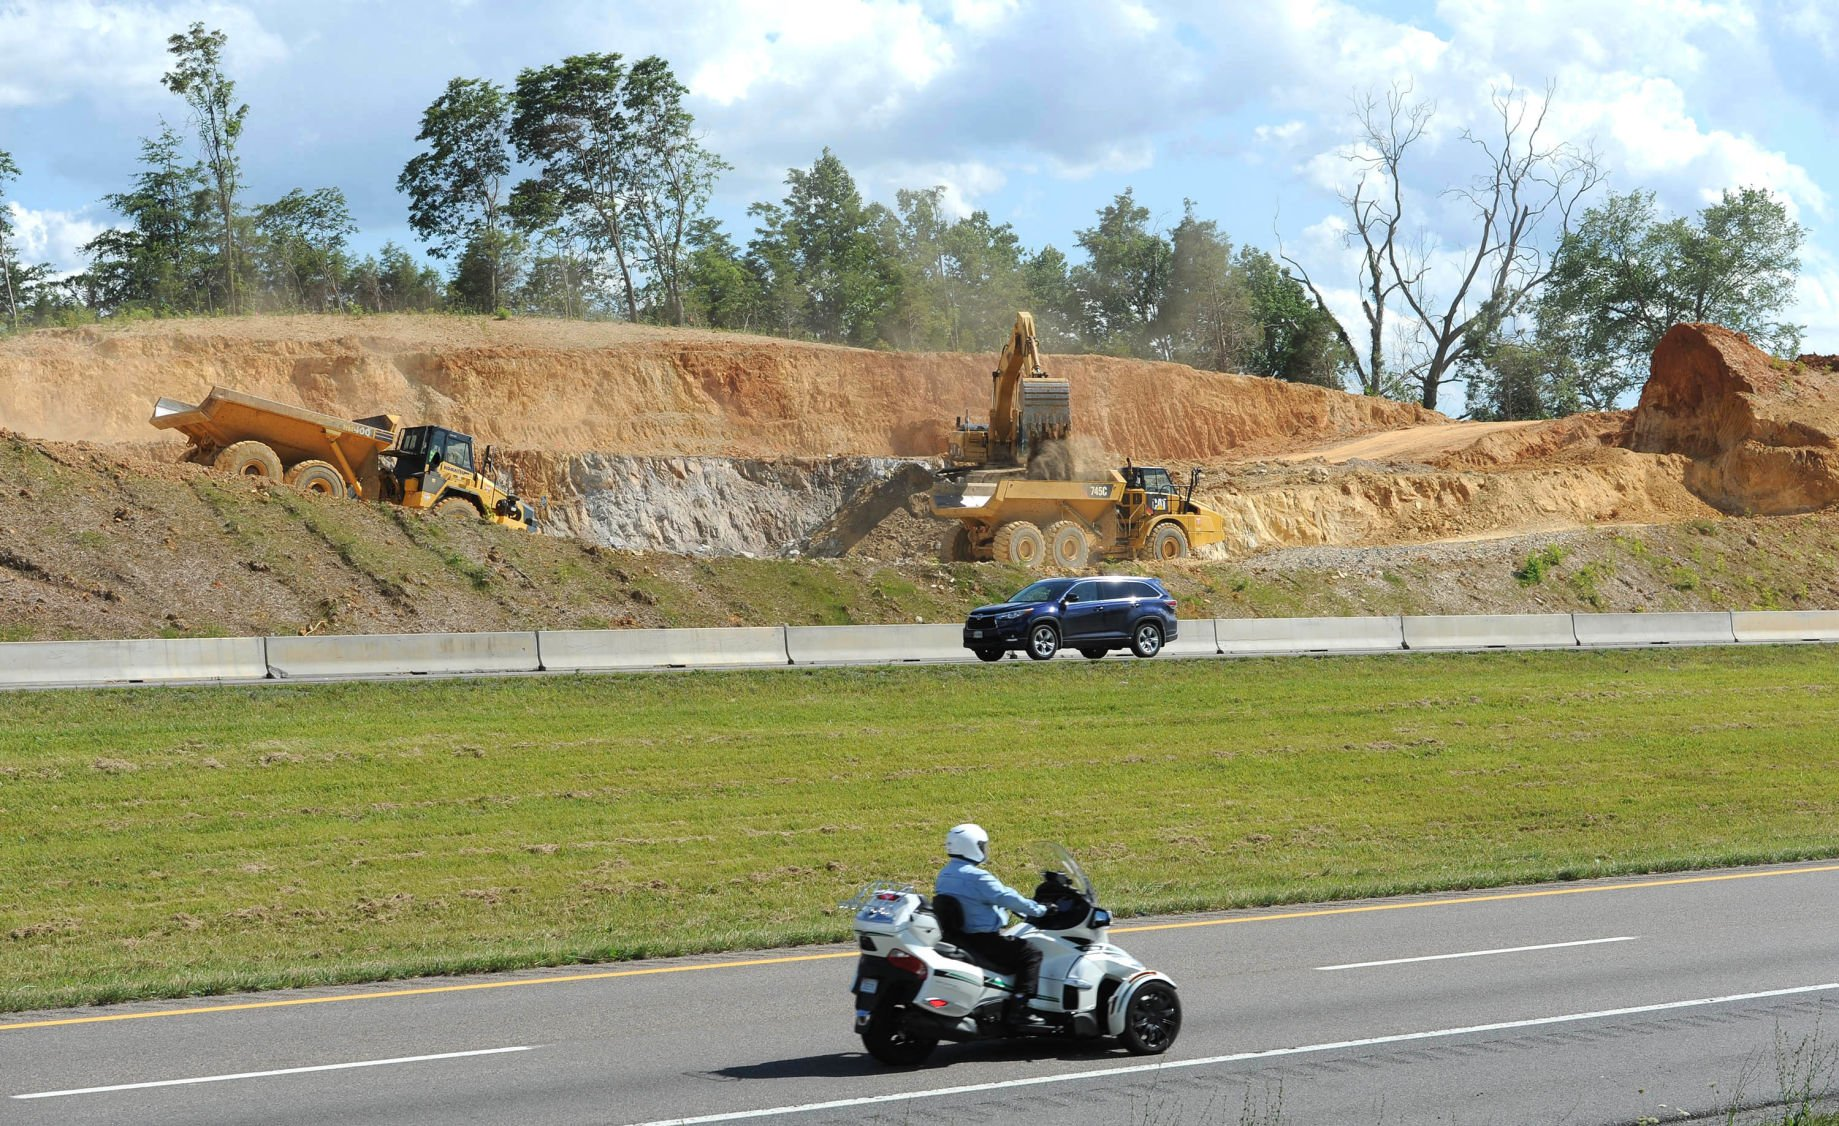 84M project underway to improve Exit 63